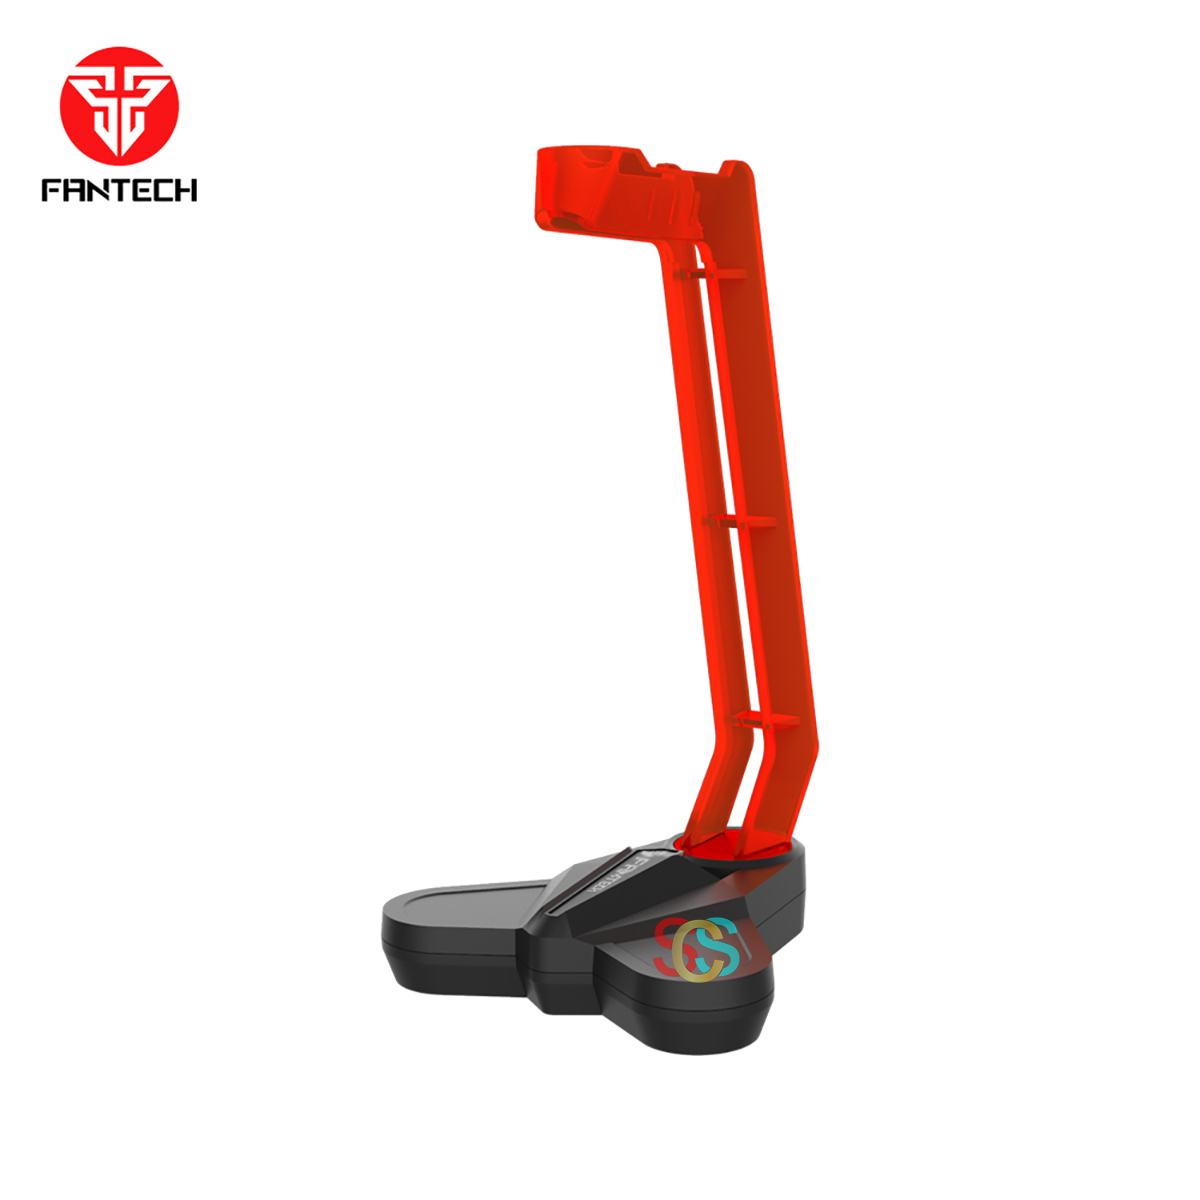 Fantech AC3001s RGB Red Headset Stand